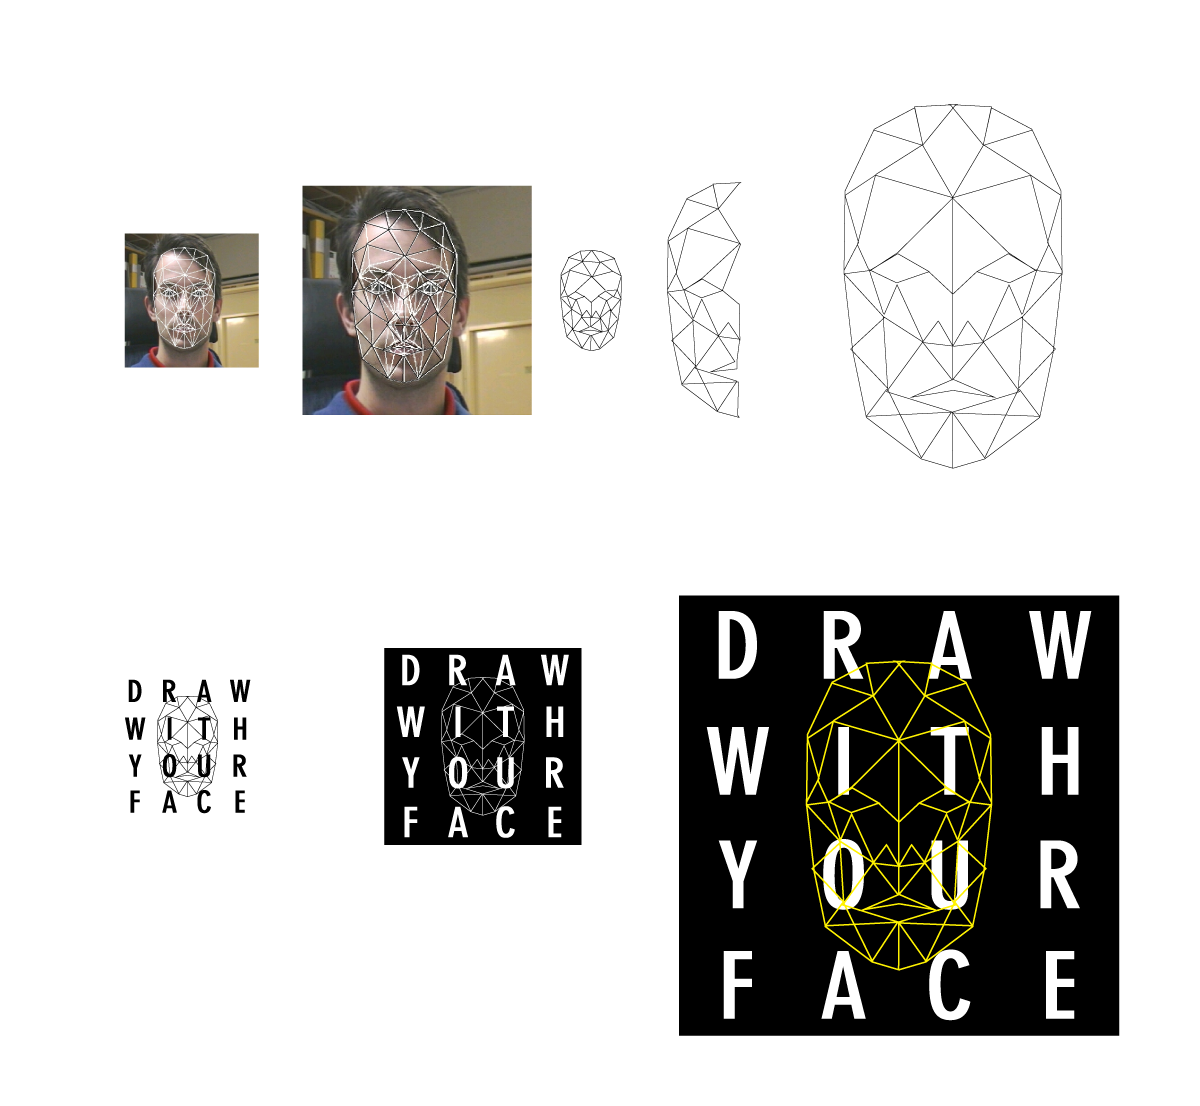 drawwithyourface:  Today we worked on some core design elements. Getting the logo figured out was fun. We wanted to exploit the fact that all the words in the title are four letters as well as figure out a way to incorporate a face. A face mesh taken from a pic found on google image search (http://www.lysator.liu.se/~eru/research/) was traced and simplified, and then overlaid on top of a heavily modified uppercase version of DIN font. The outcome is sort of old meets new, which we like.